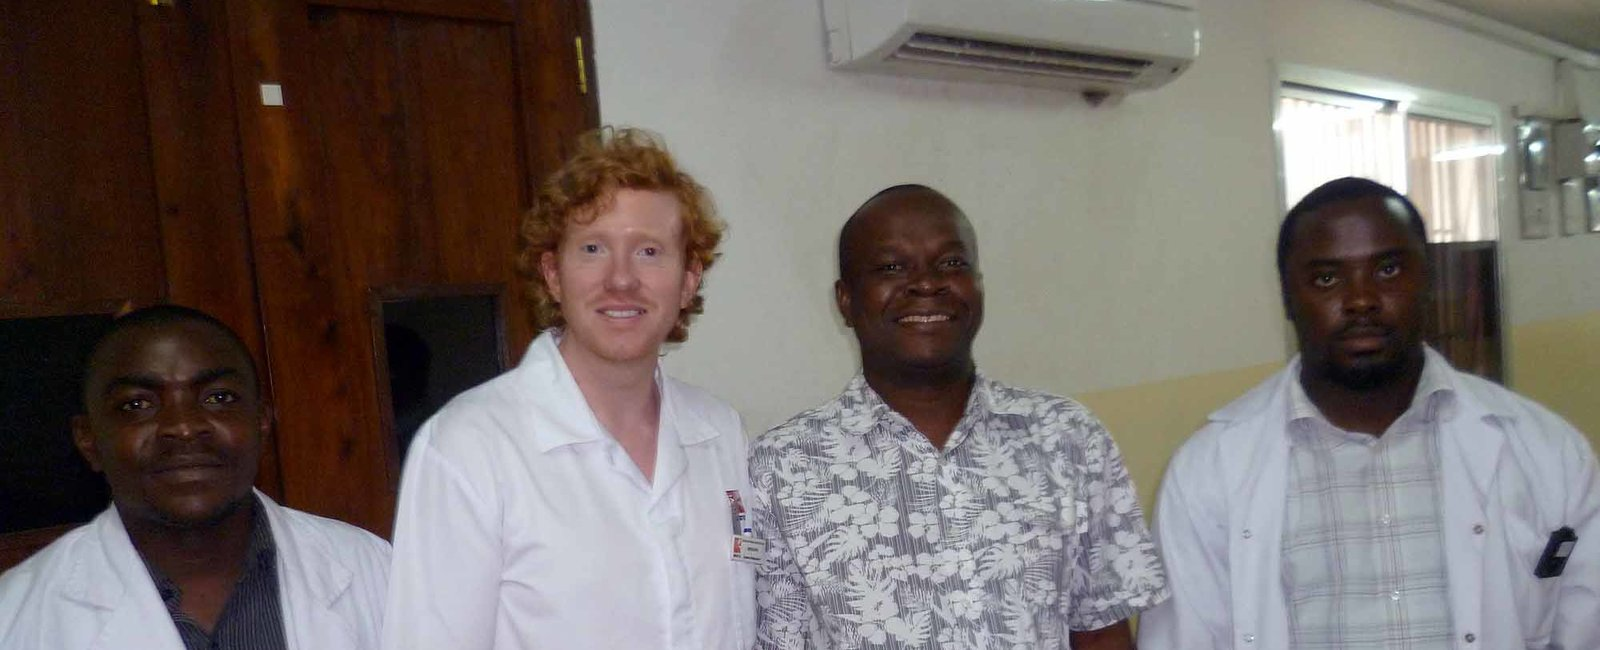 David Evans - Radiography Electives in Tanzania Dar es Salaam